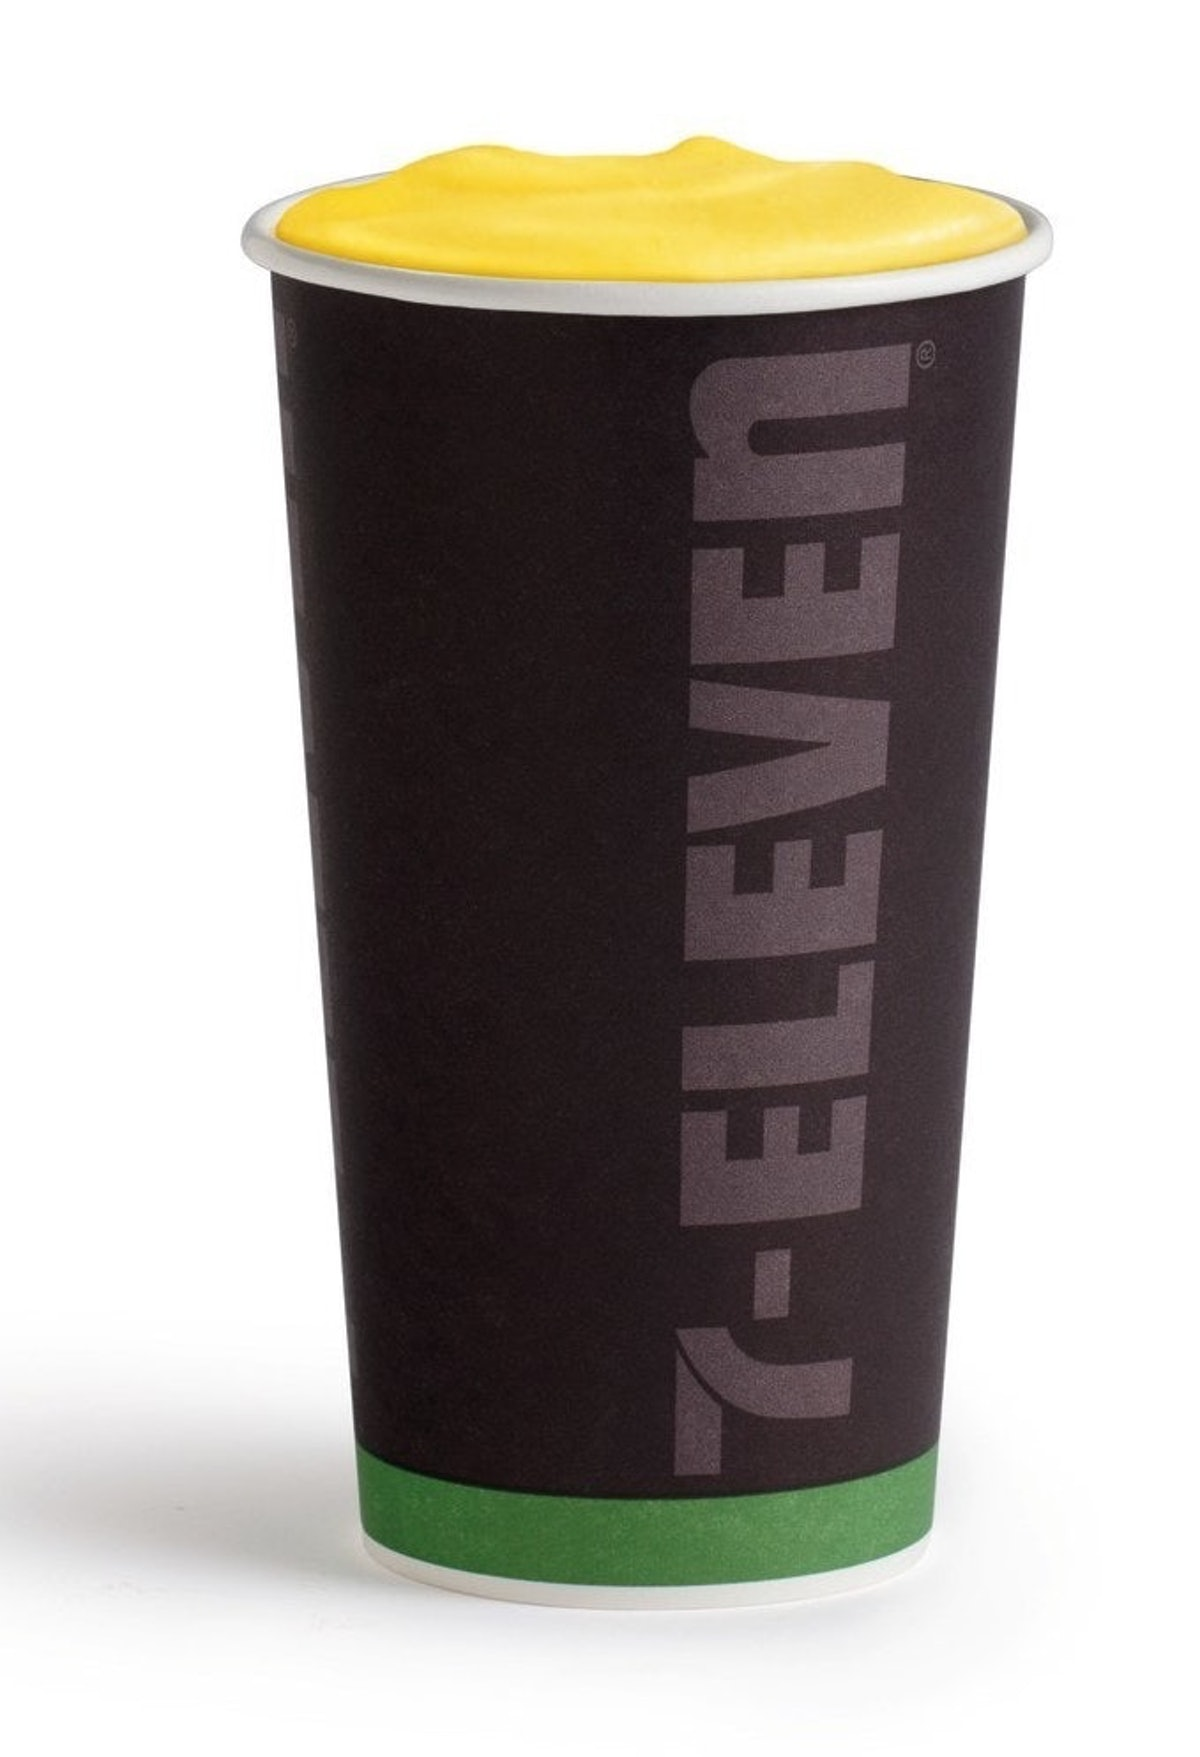 7-Eleven's Peeps Marshmallow Latte is here for spring.